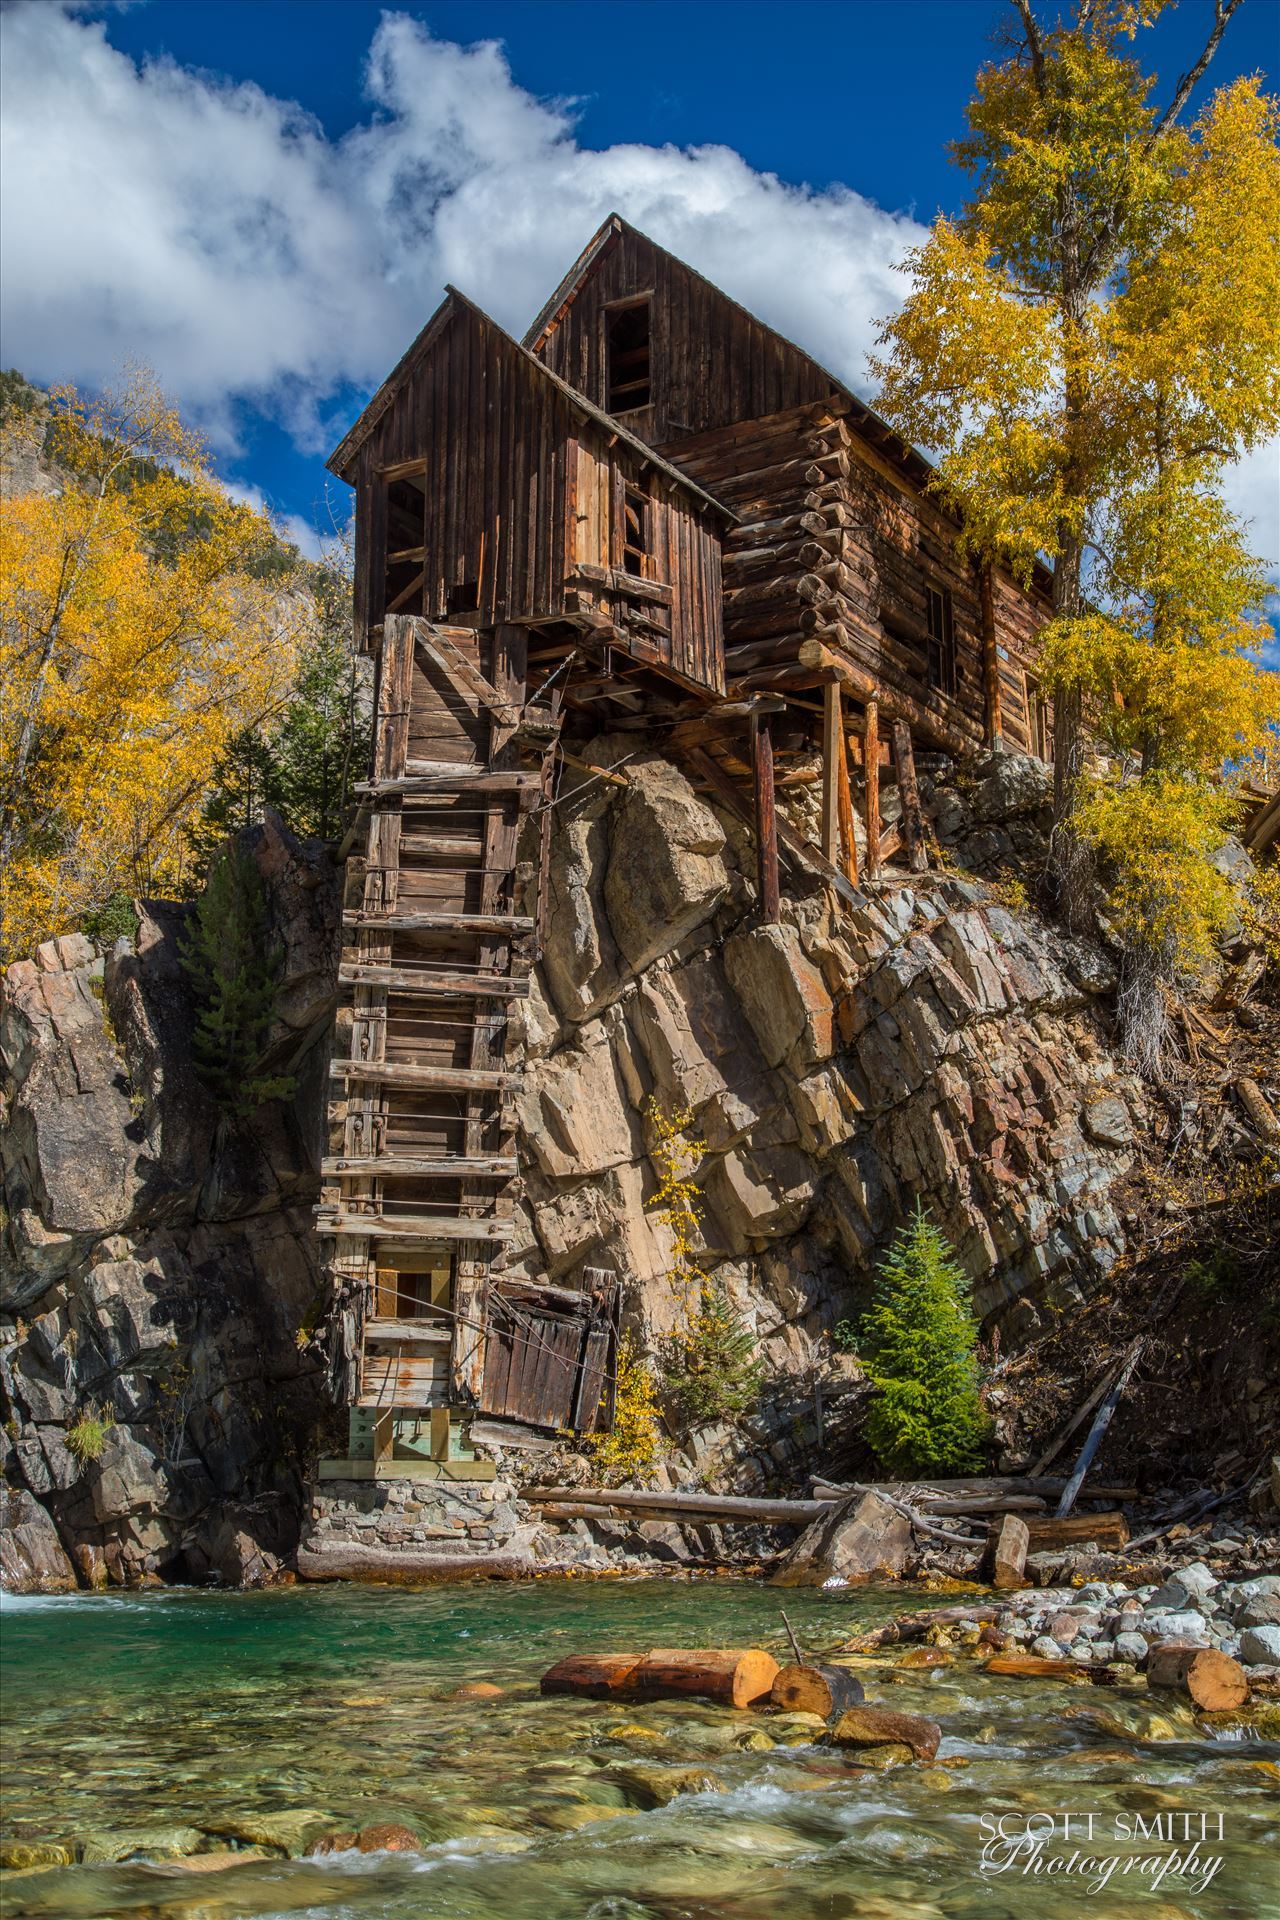 Crystal Mill, Colorado 14 - The Crystal Mill, or the Old Mill is an 1892 wooden powerhouse located on an outcrop above the Crystal River in Crystal, Colorado by Scott Smith Photos